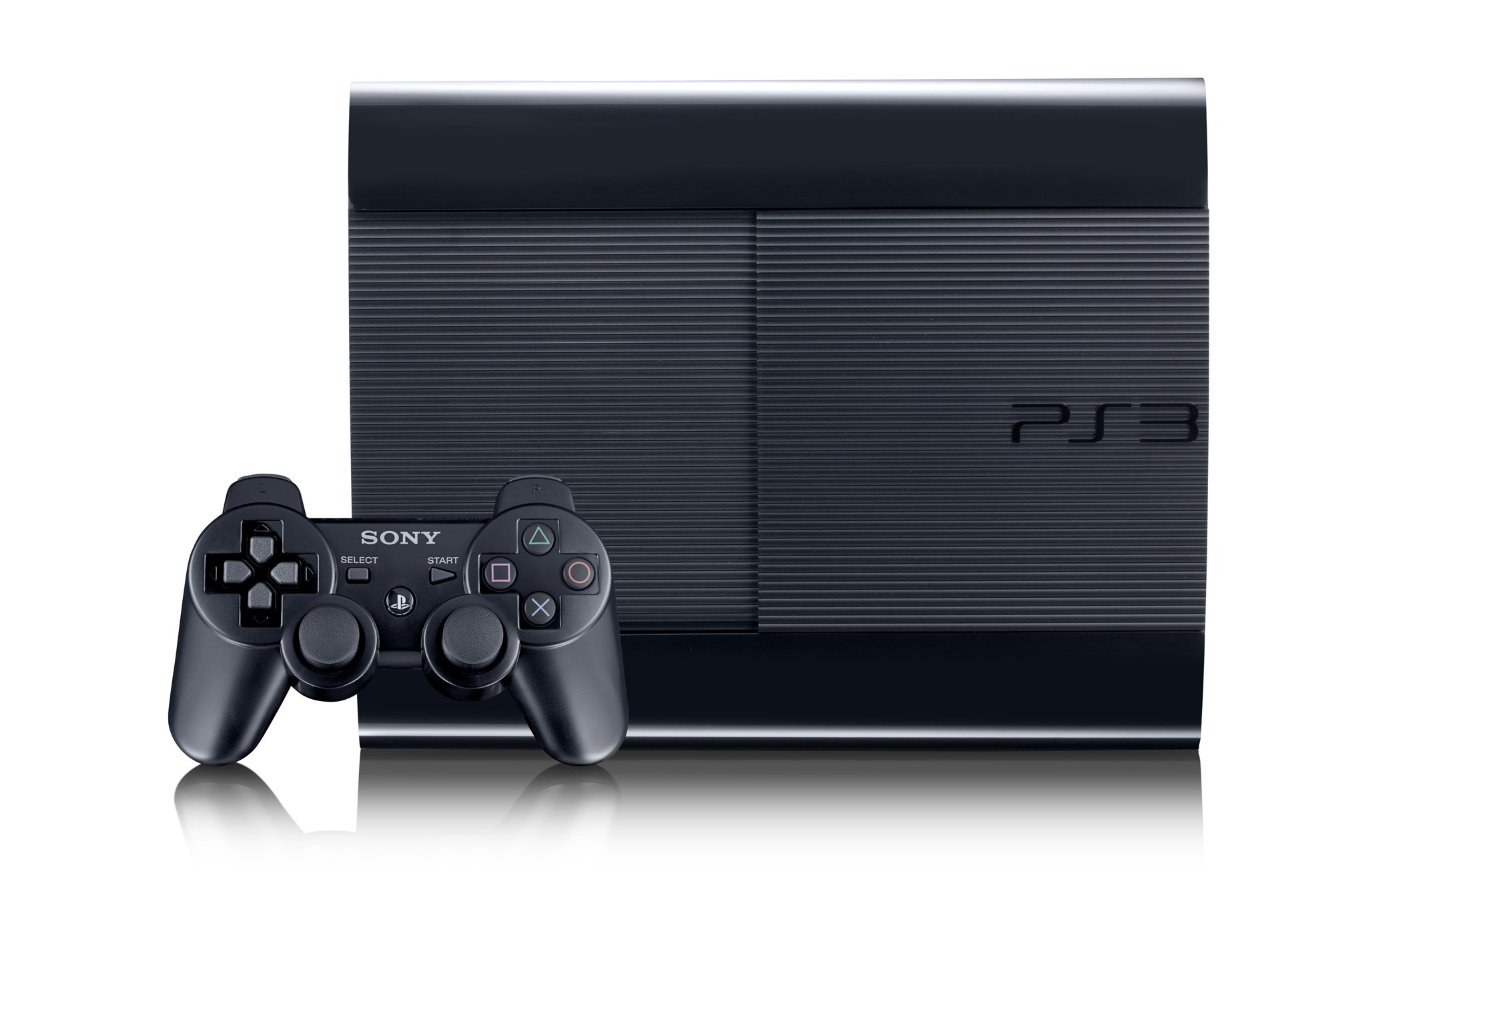 playstation 3 The latest tweets from playstation (@playstation) official twitter updates on playstation, ps4, ps vr, ps vue, and playstation network titles rated e-m support channel: @askplaystation managed by us.